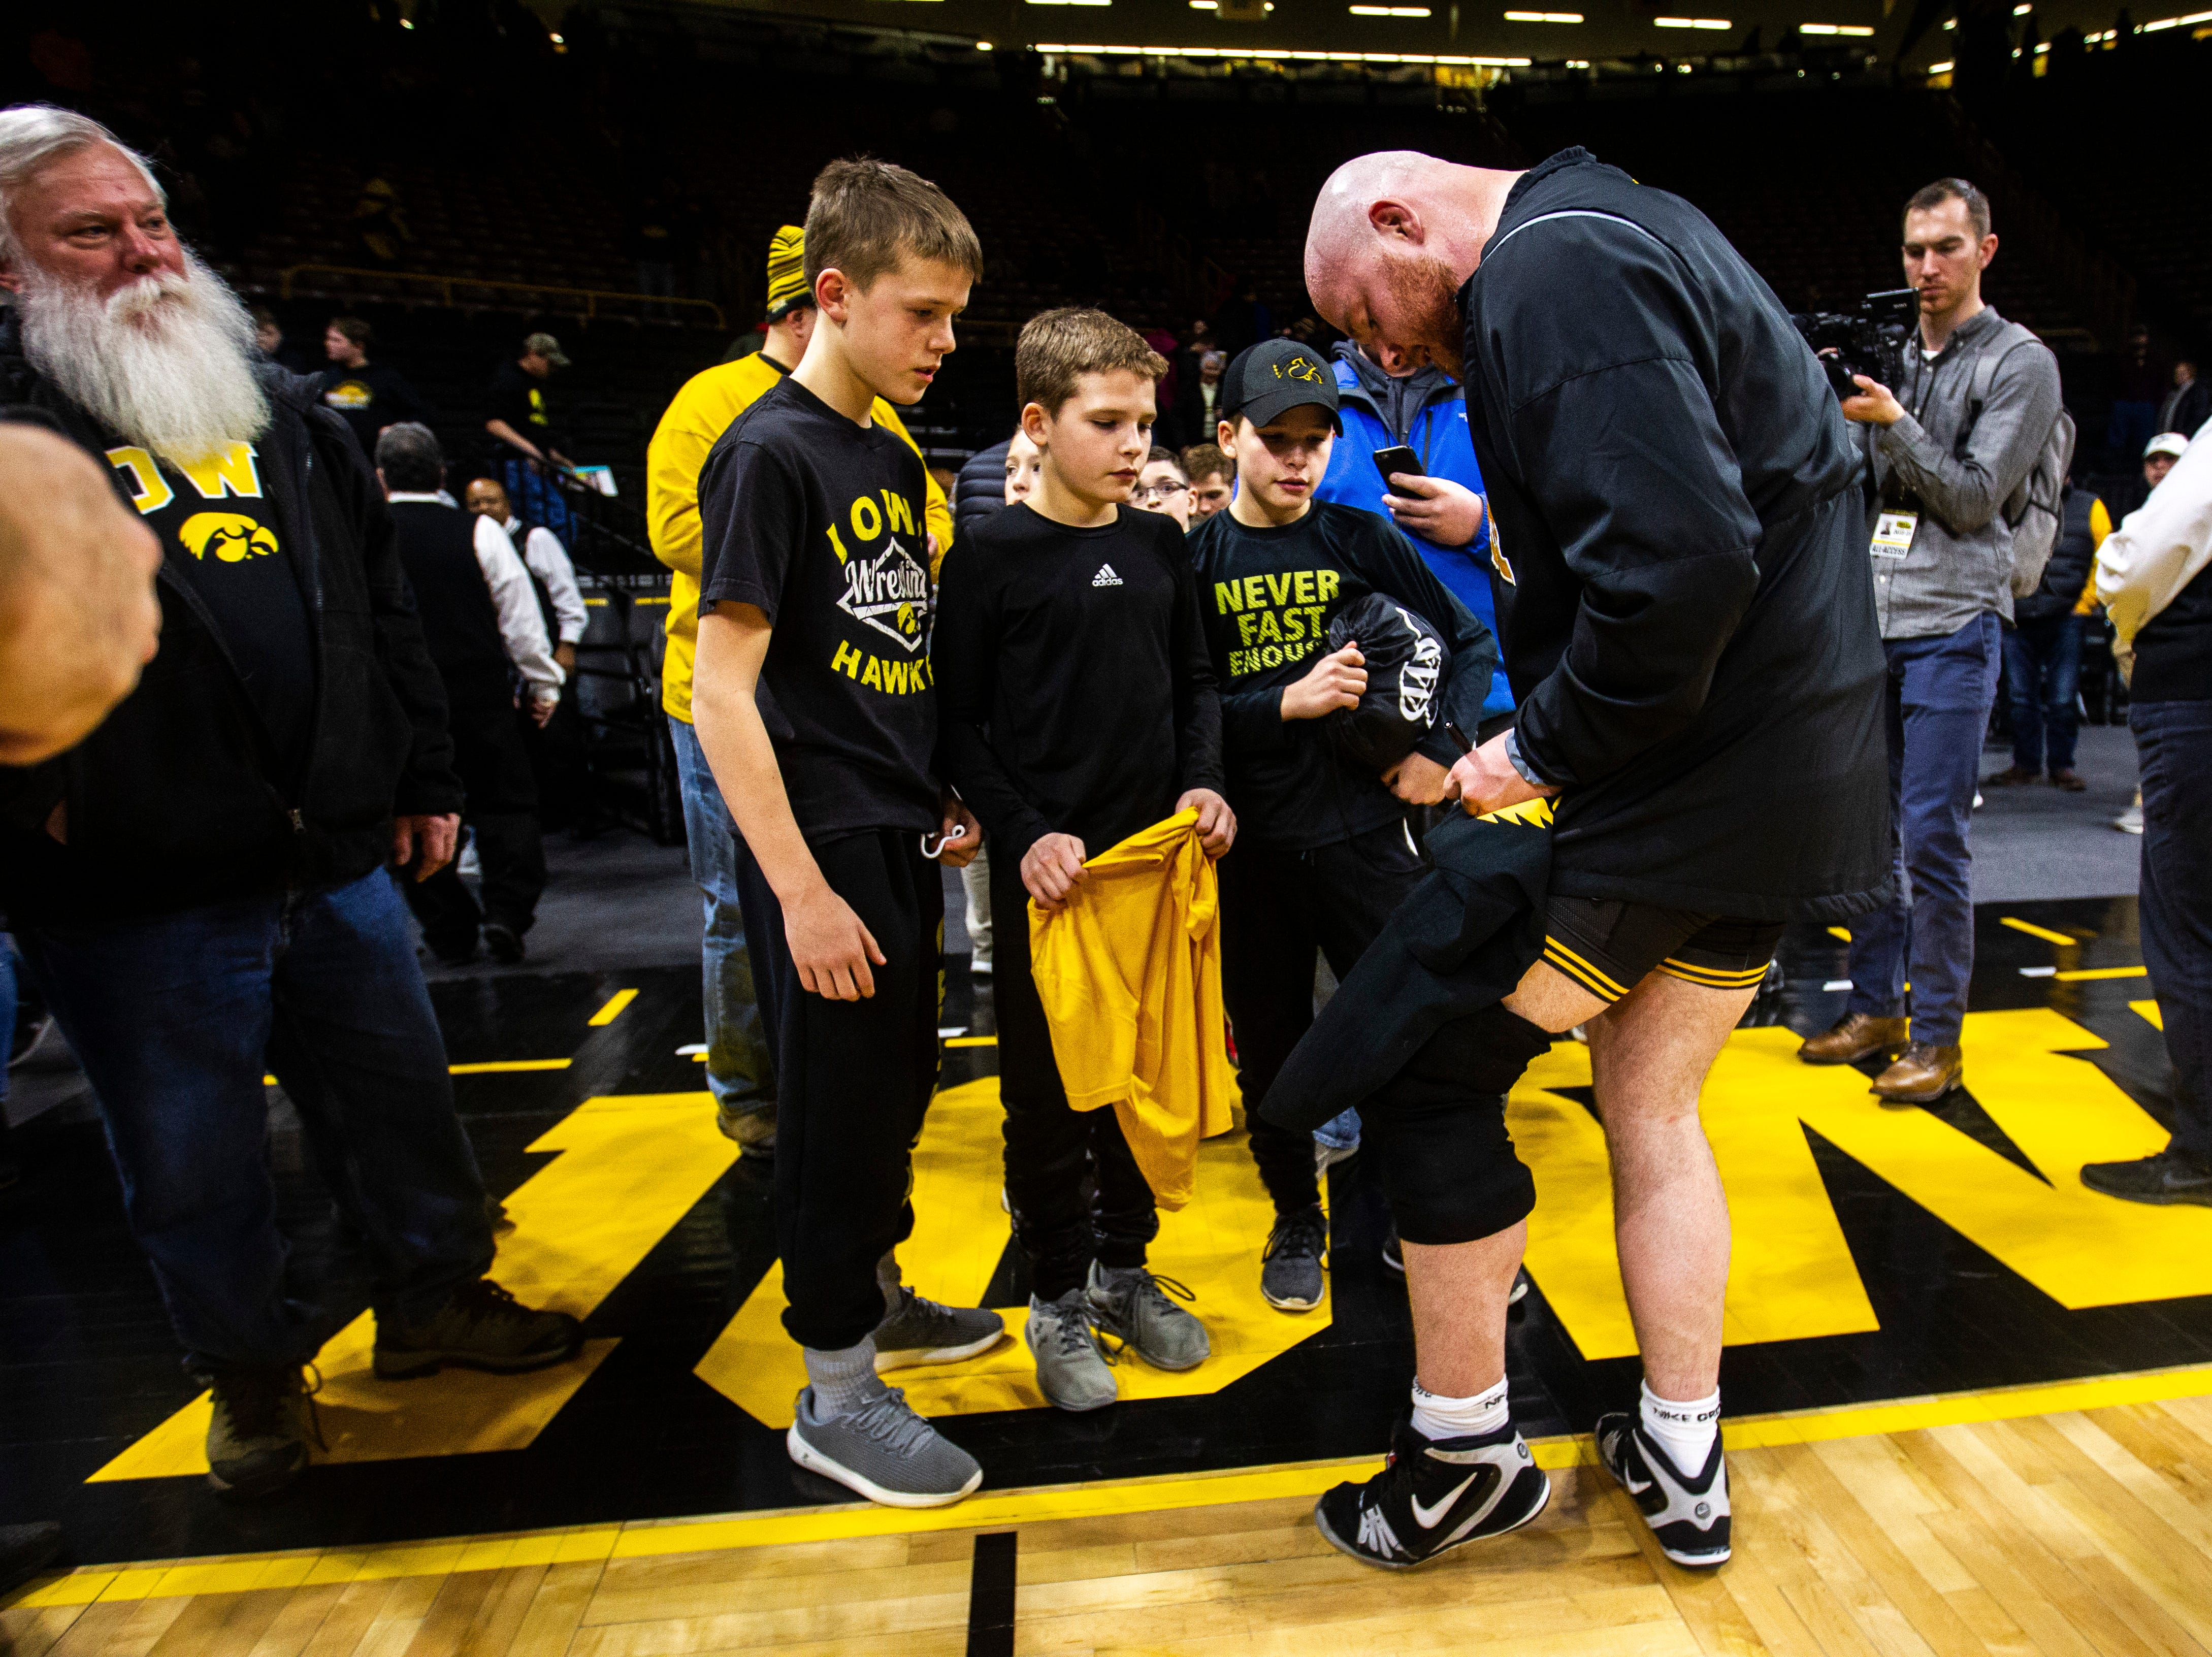 Iowa senior 285-pounder Sam Stoll signs autographs for fans after a NCAA Big Ten Conference wrestling dual on Friday, Feb. 15, 2019 at Carver-Hawkeye Arena in Iowa City, Iowa.